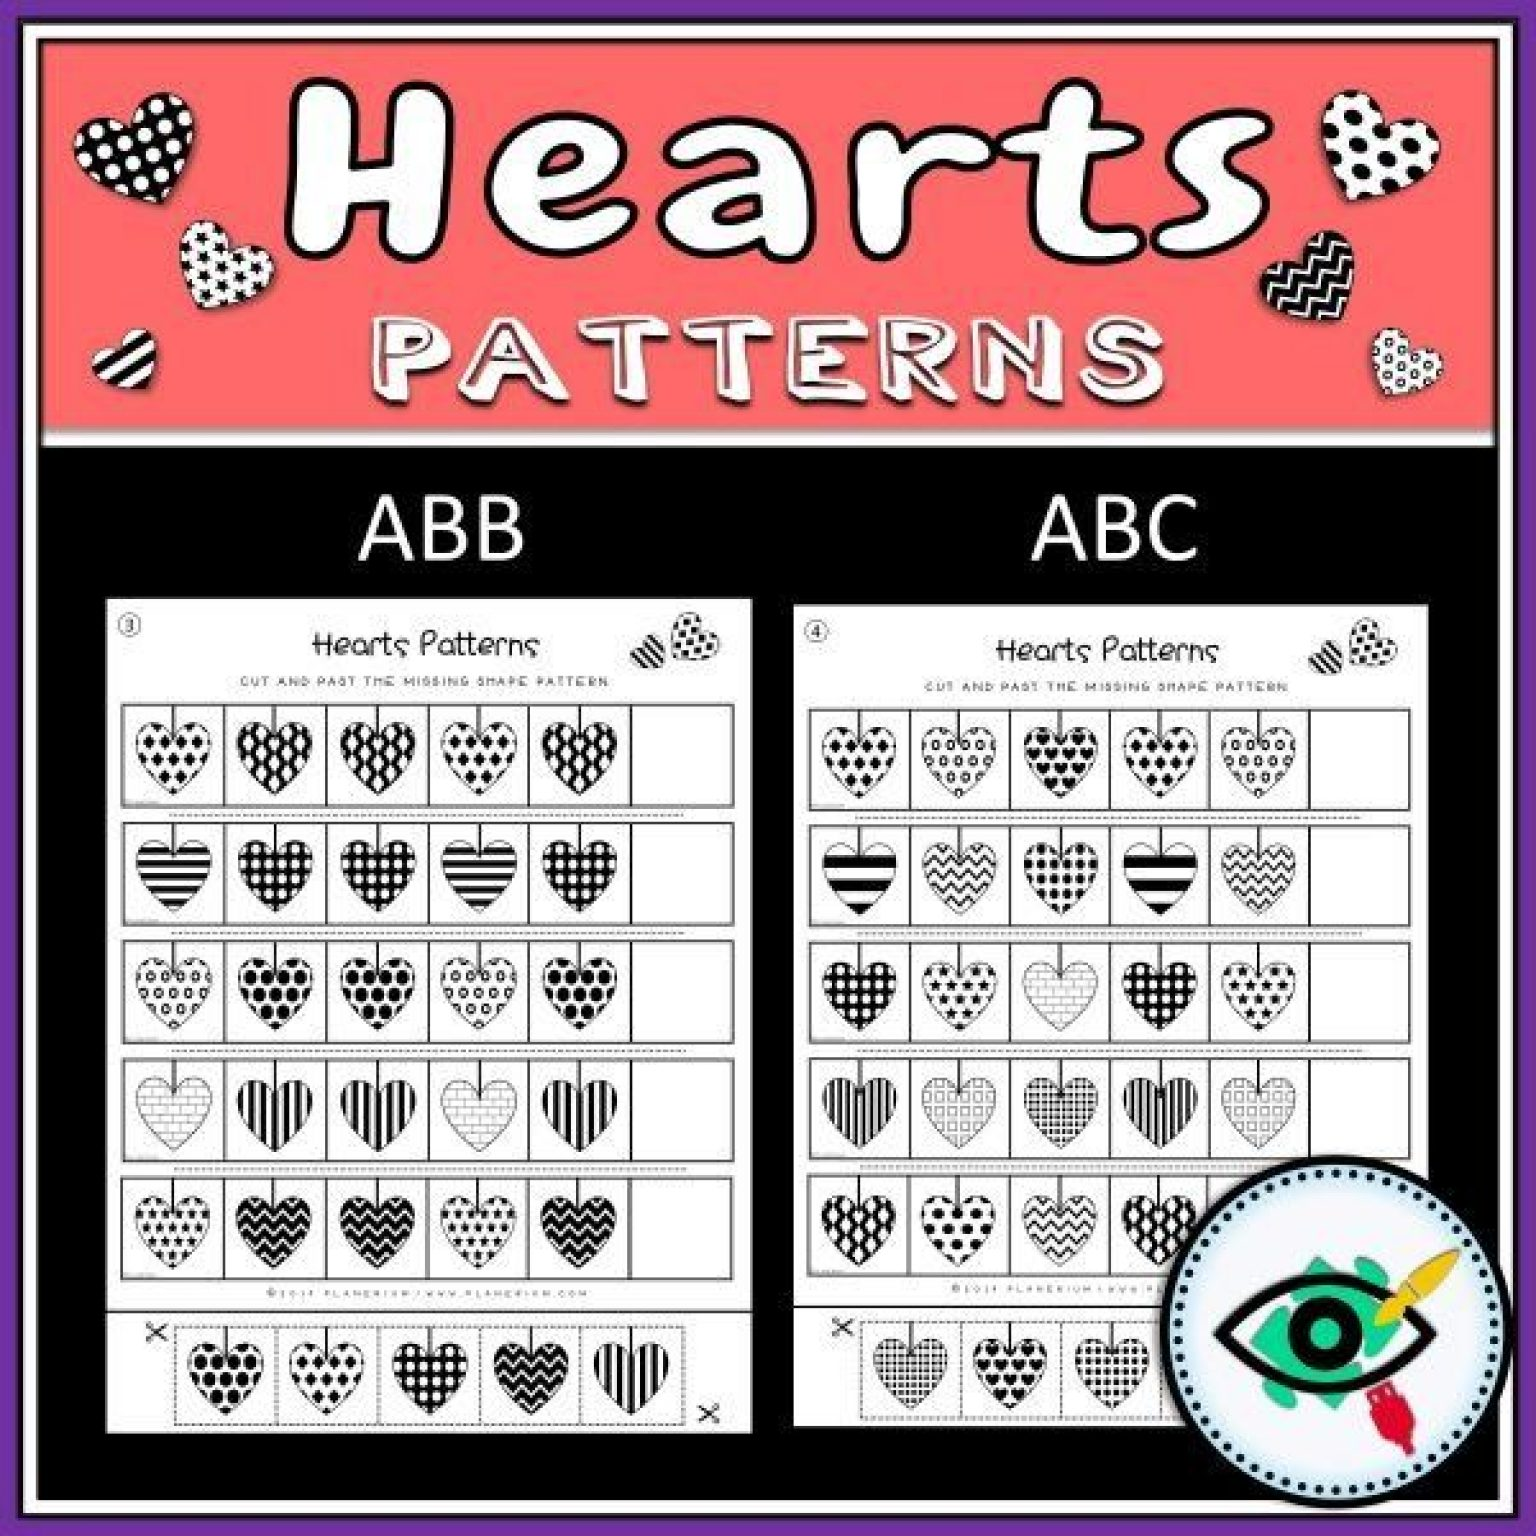 hearts-patterns-title2